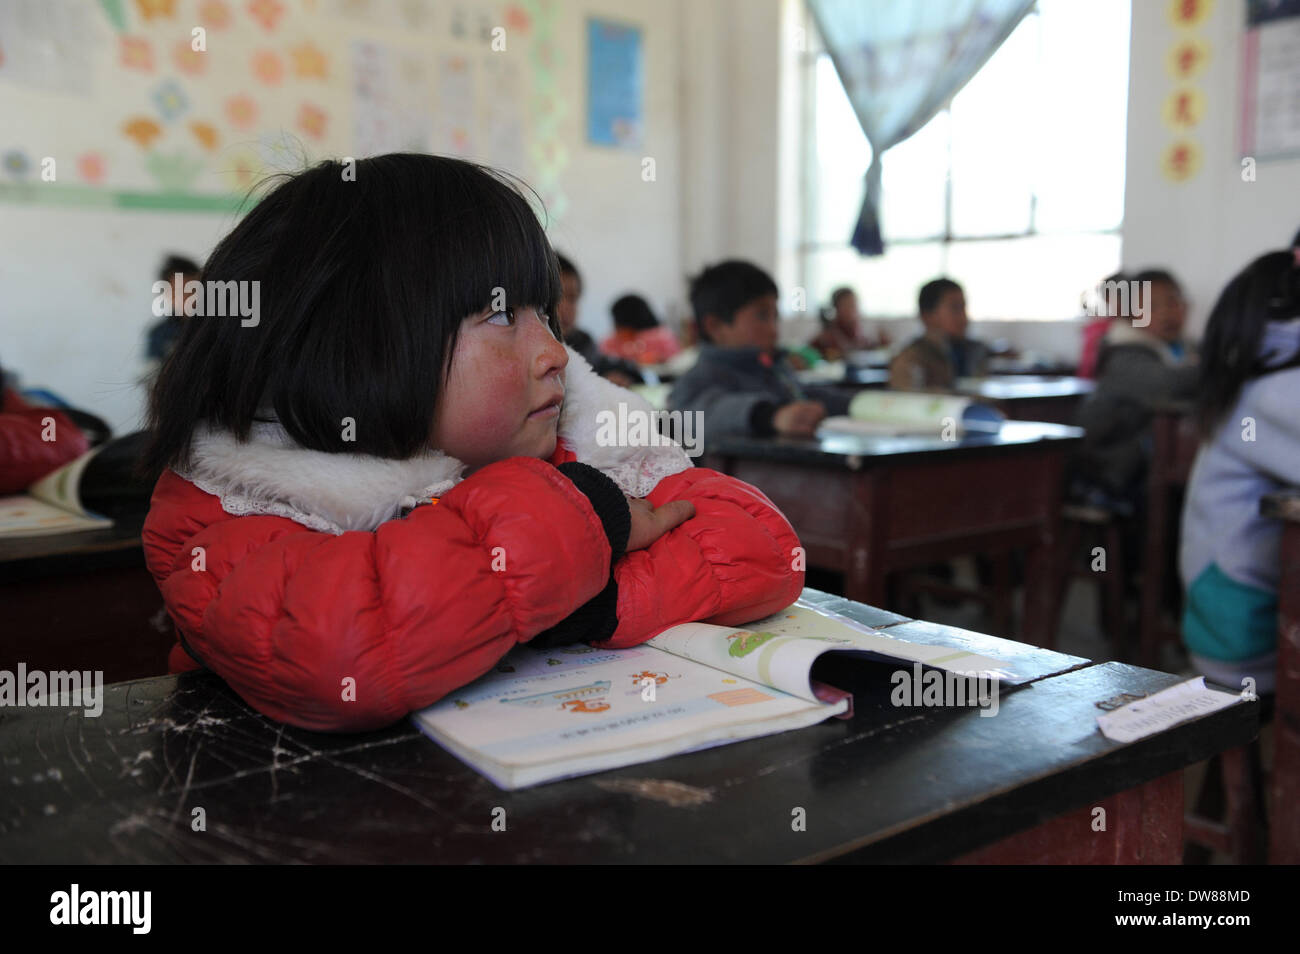 (140303) -- WEINING, March 3, 2014 (Xinhua) -- Students are in class at Qianfeng Primary School in Weining County, southwest China's Guizhou Province, Mach 3, 2014. Monday marks the beginning of a new term for students at Qianfeng Primary School. The school, with an altitude of 2,500 meters, sits in mountainous areas in Guizhou and only has 48 pupils. (Xinhua/Tao Liang) (zc) - Stock Image